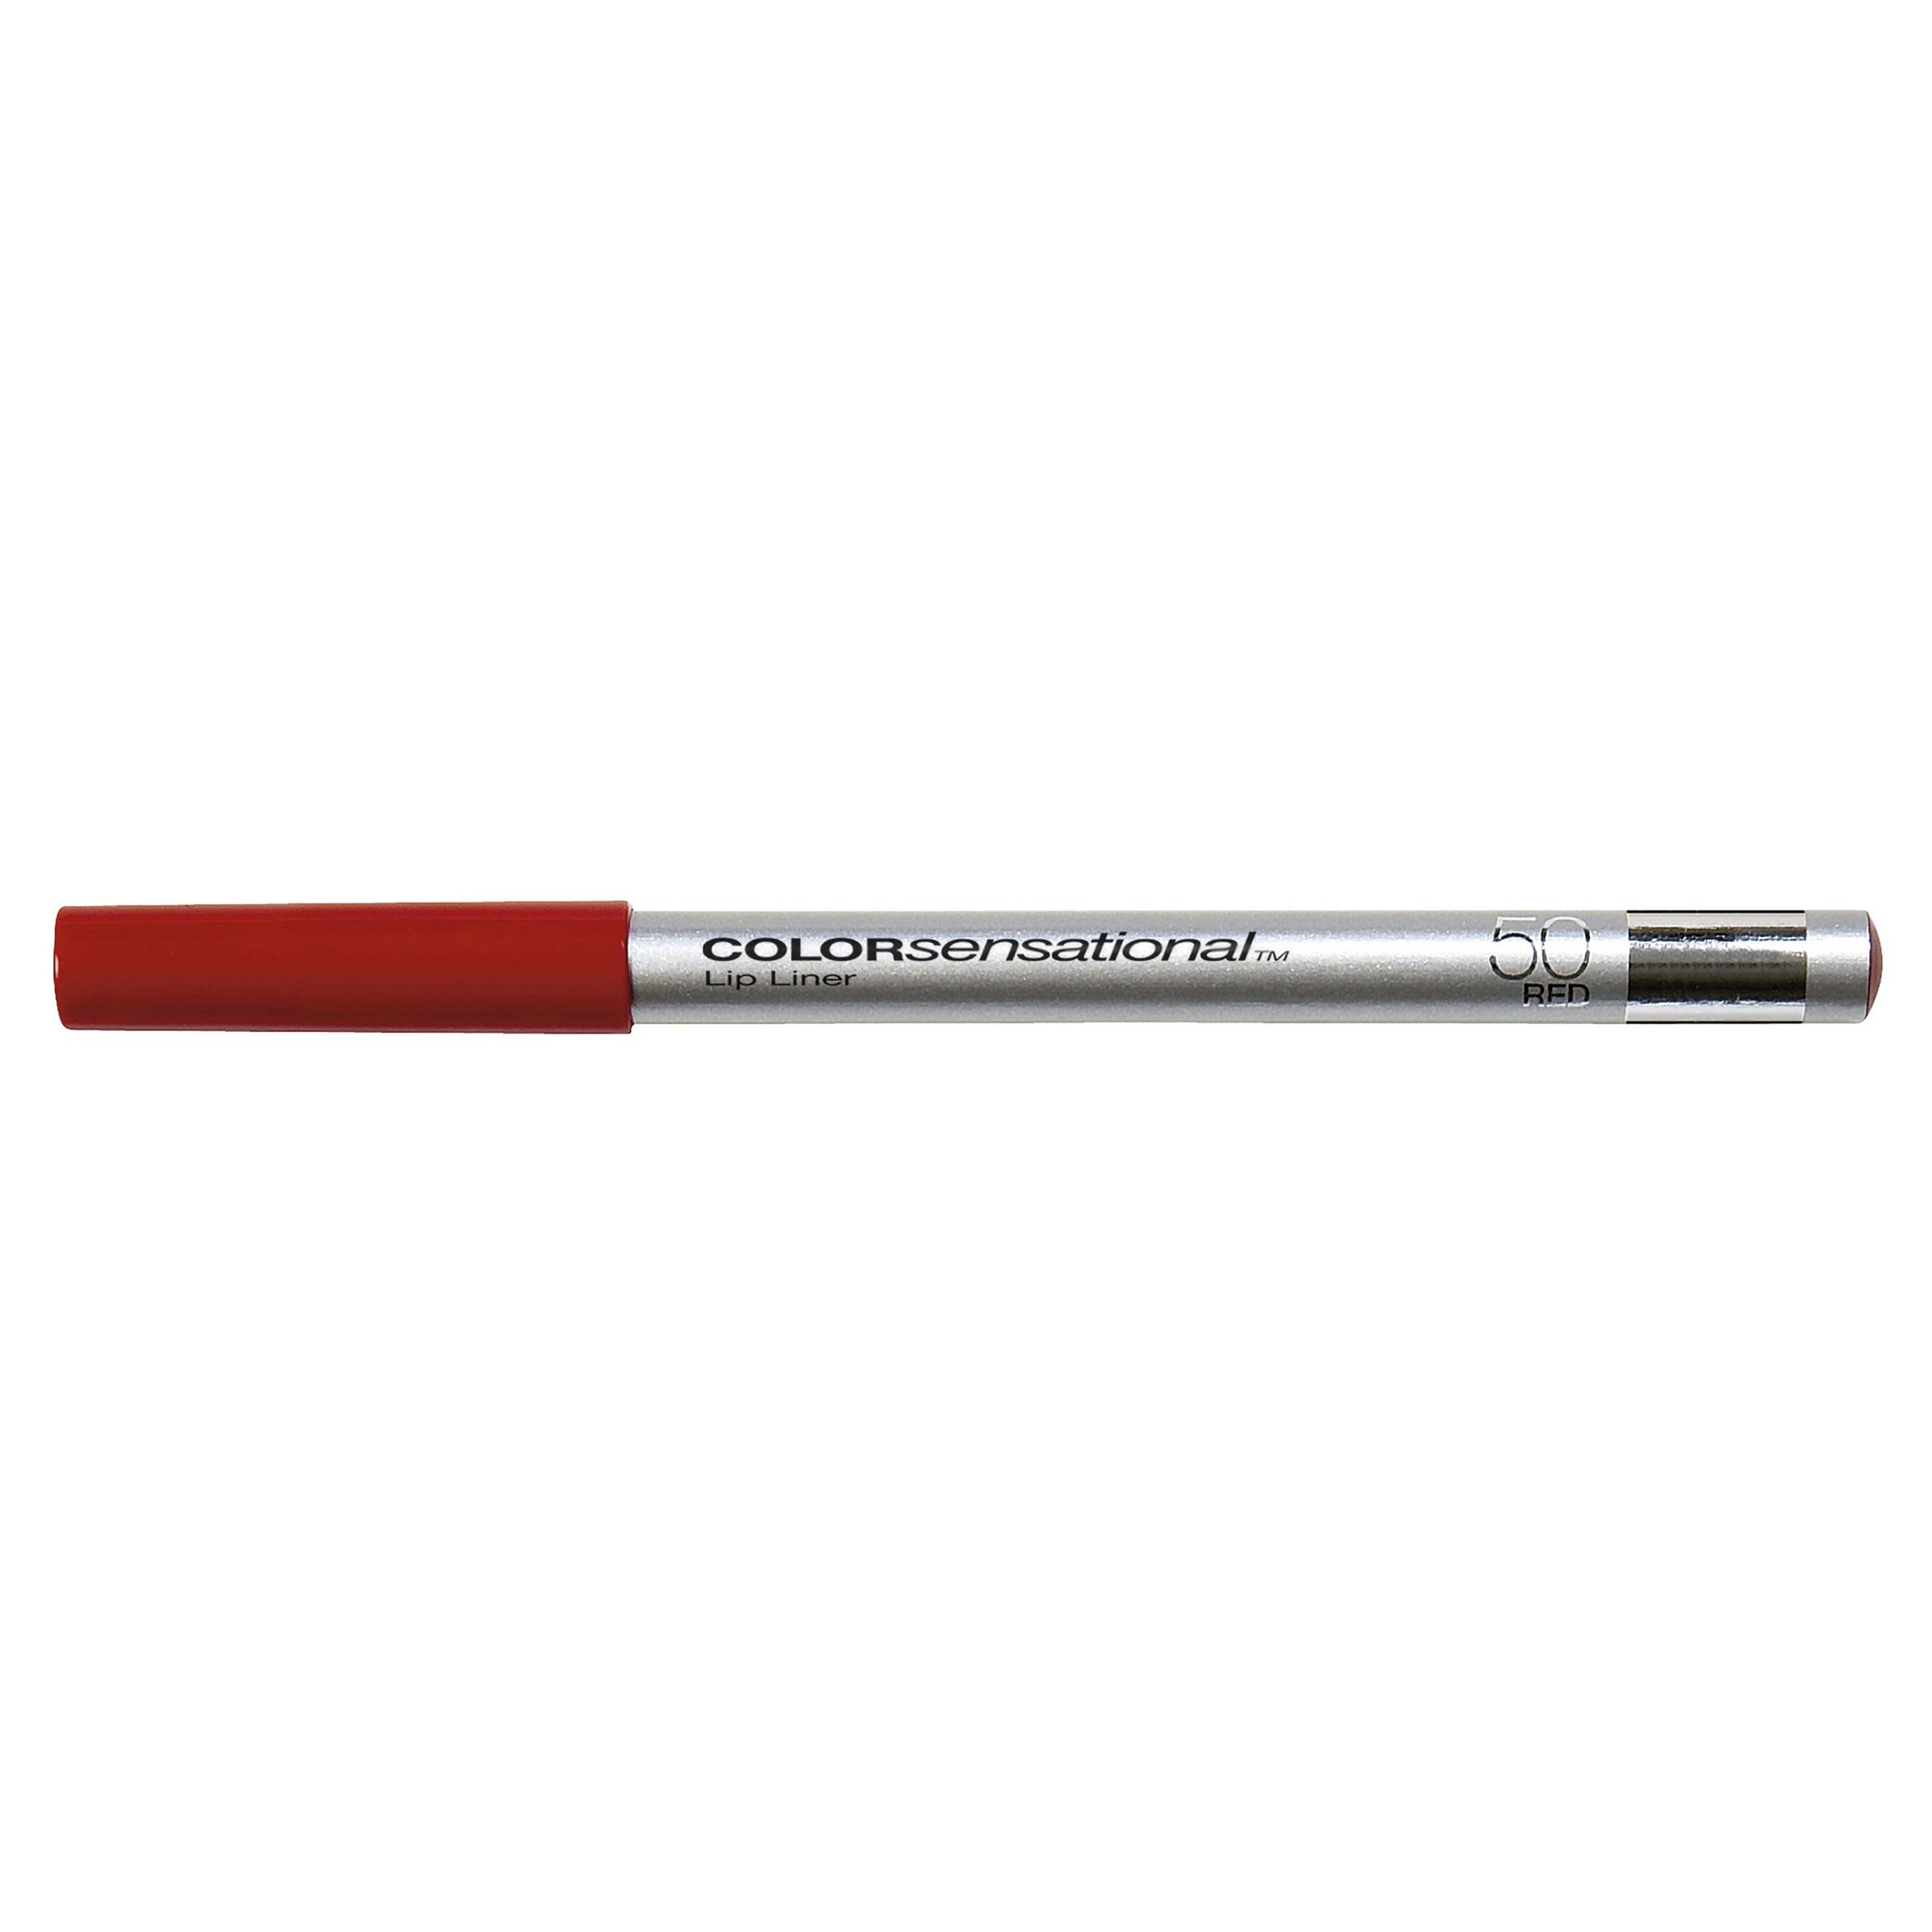 Maybelline New York ColorSensational Lip Liner, Red 50, 0.04 Ounce